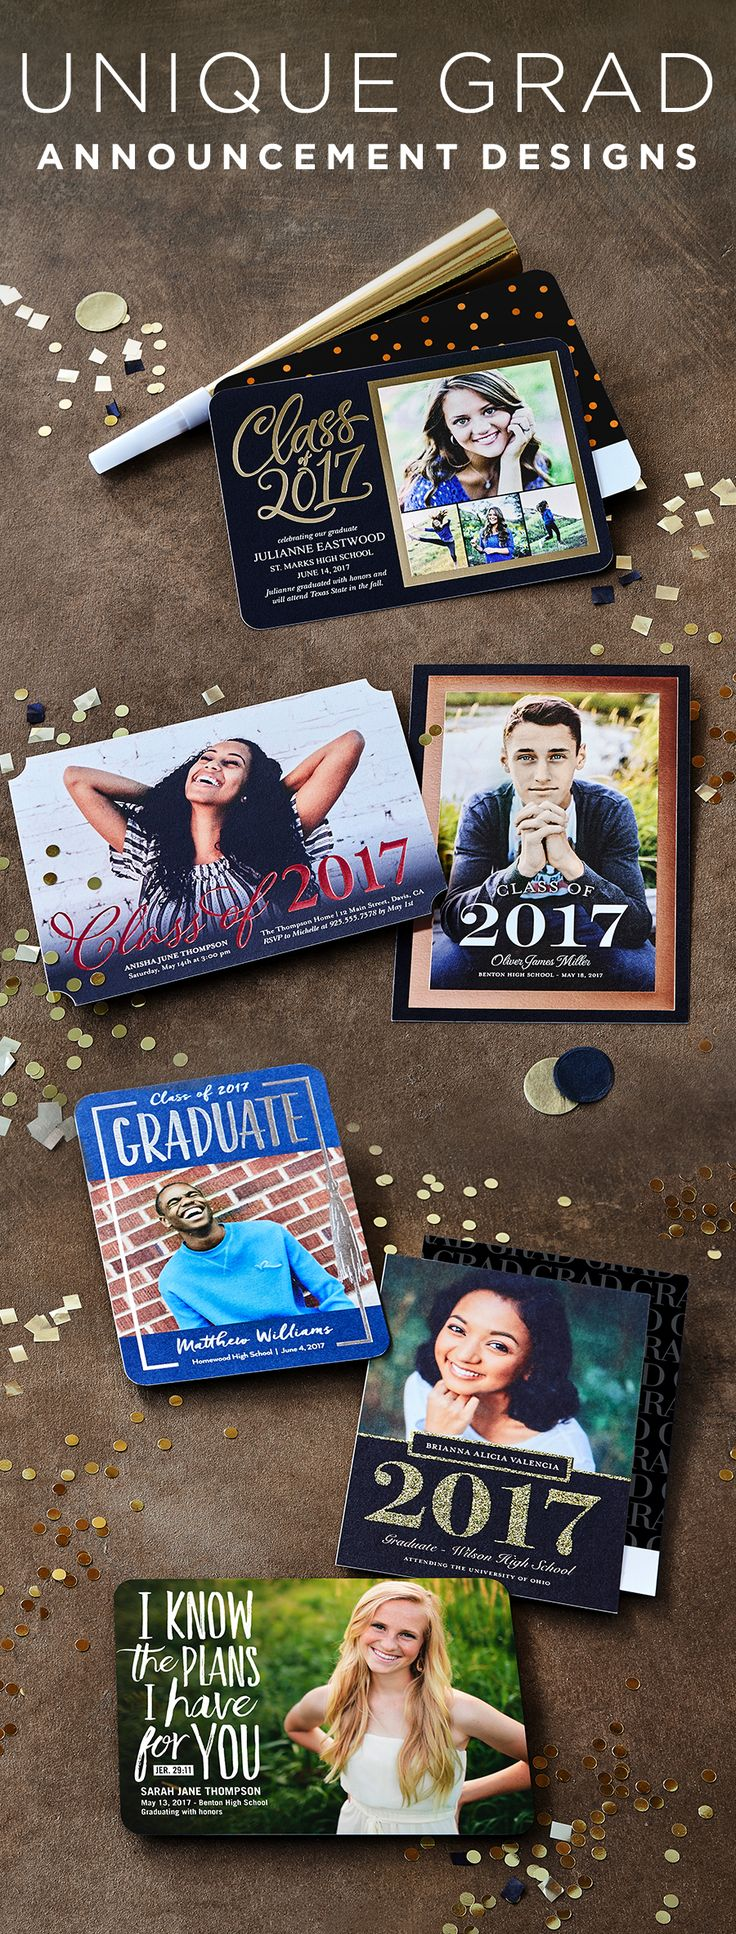 Celebrate the class of 2017! Share your unique graduate's joy and success with lovde ones, friends, teachers, and neighbors with Shutterfly's custom graduation announcements. | Shutterfly